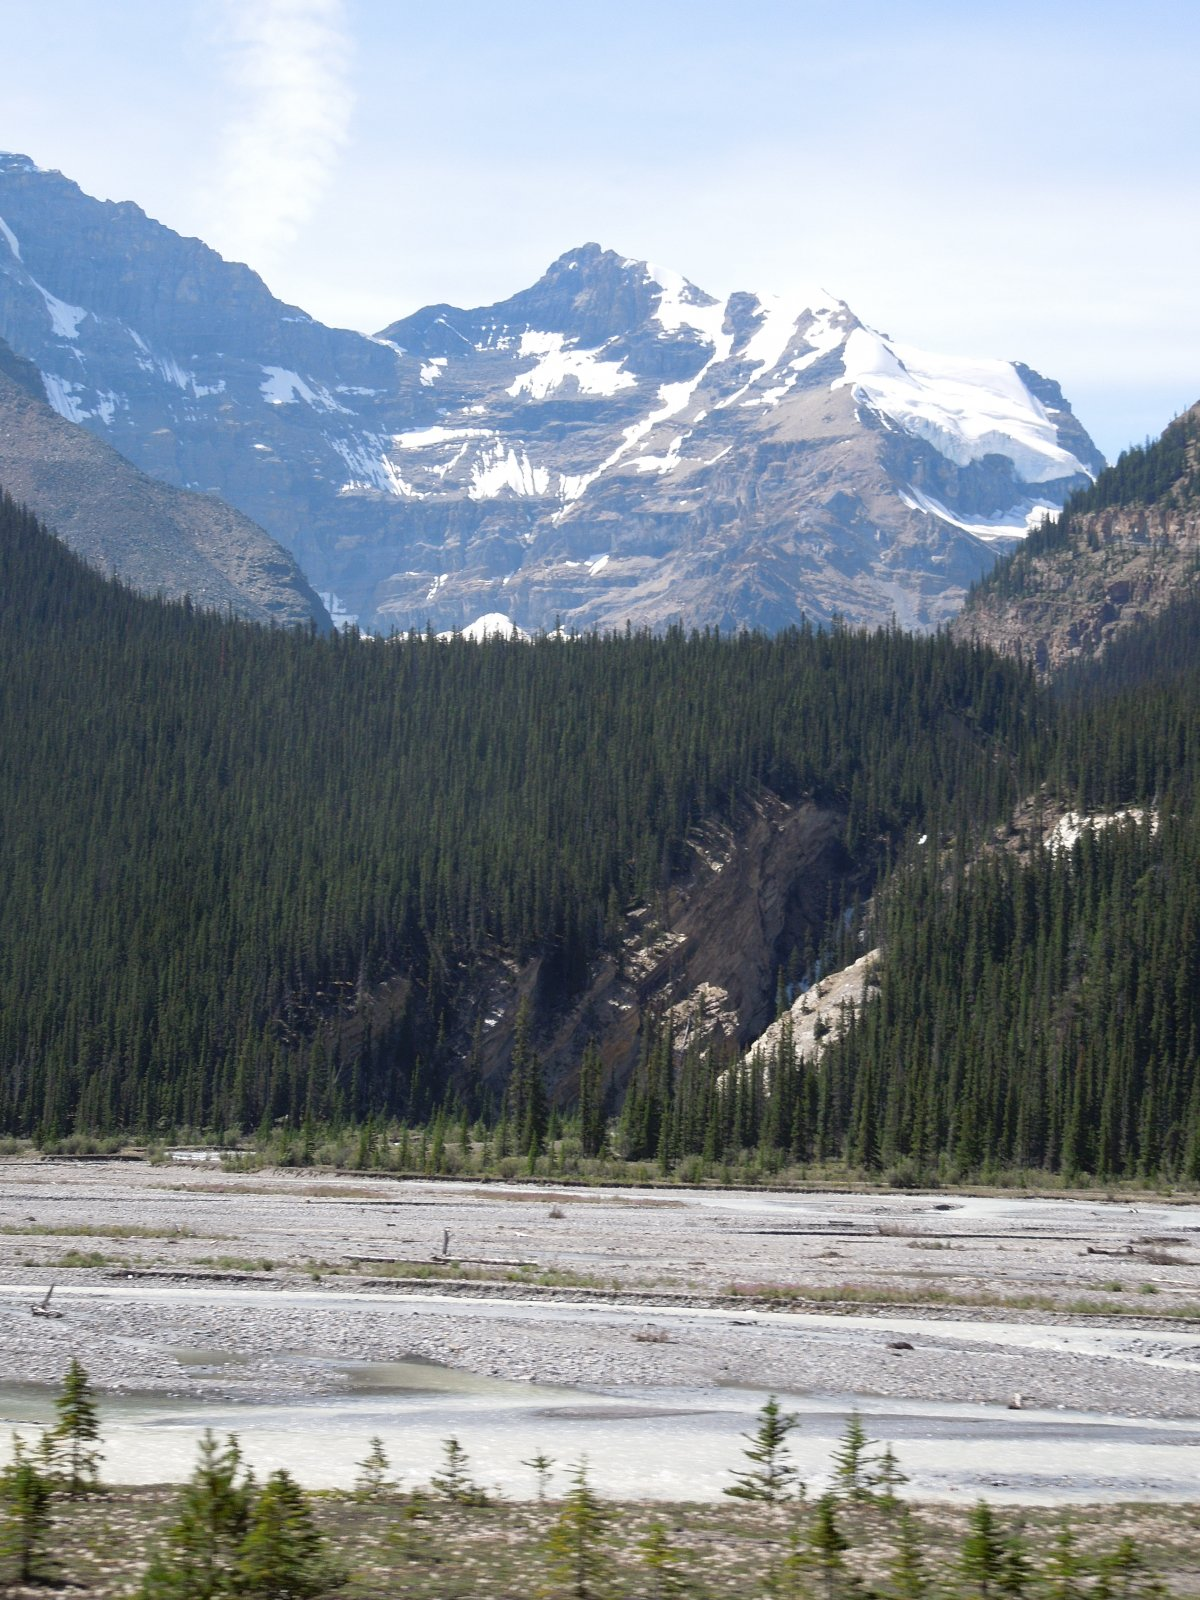 Click image for larger version  Name:Dawson Creek to Icefield Parkway to Cochrane 220.jpg Views:49 Size:384.0 KB ID:222447